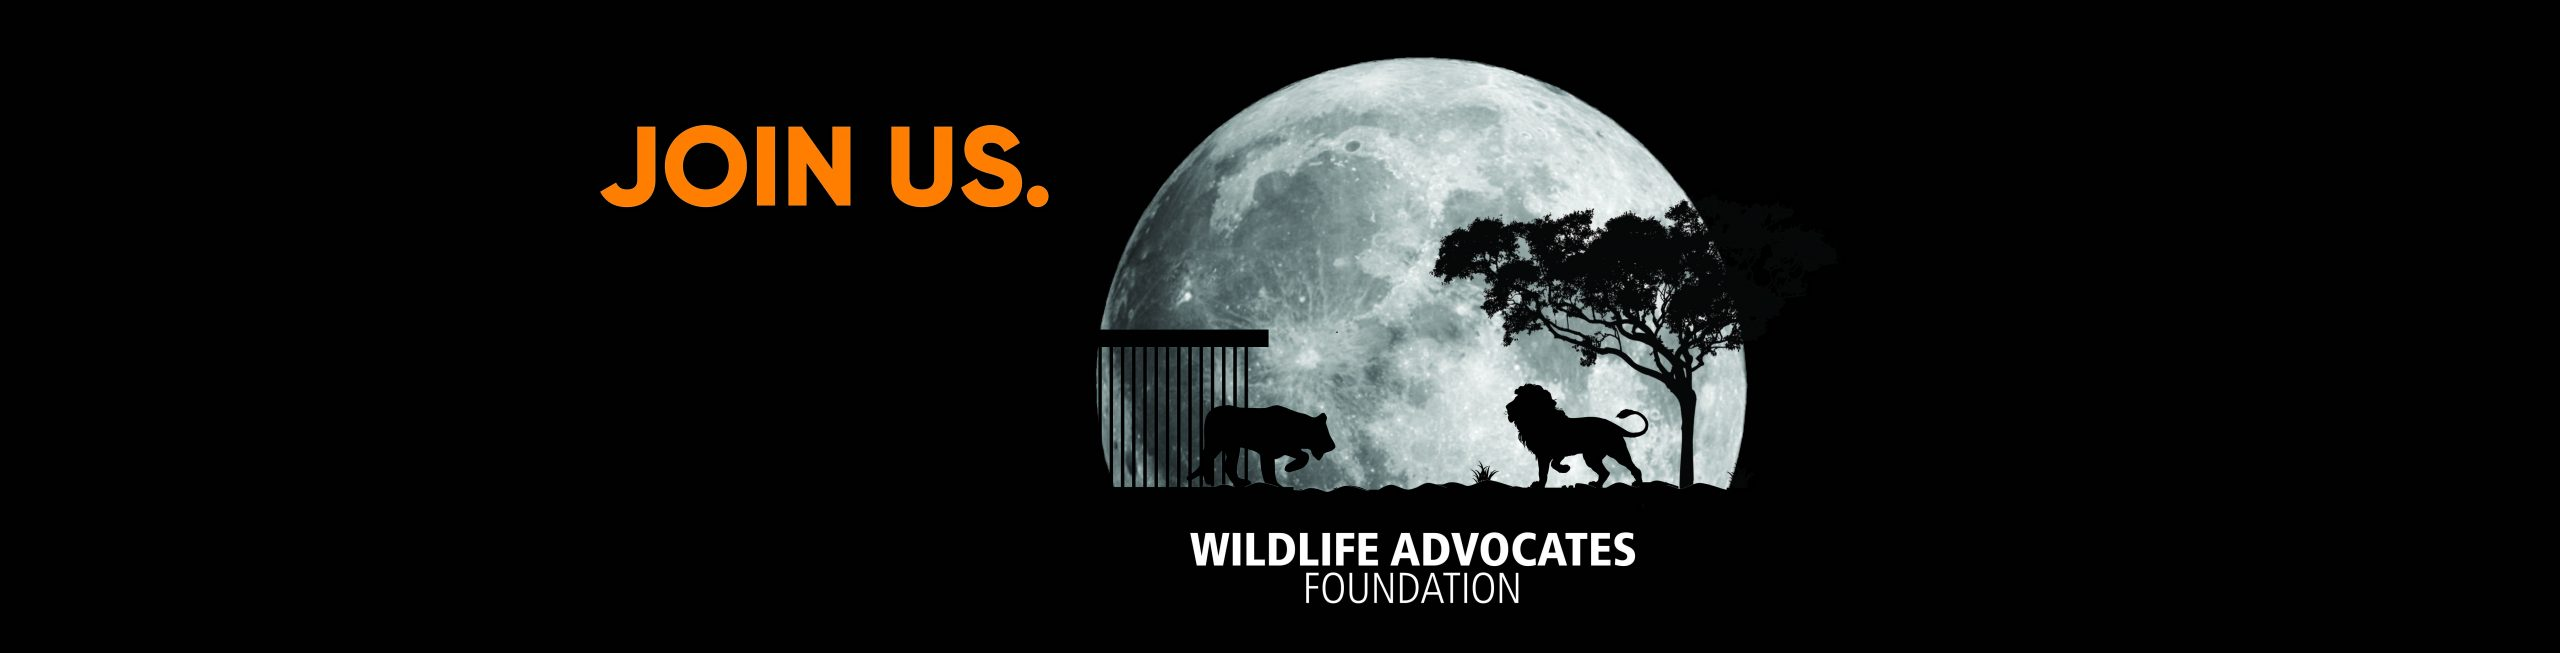 Wildlife Advocates Foundation